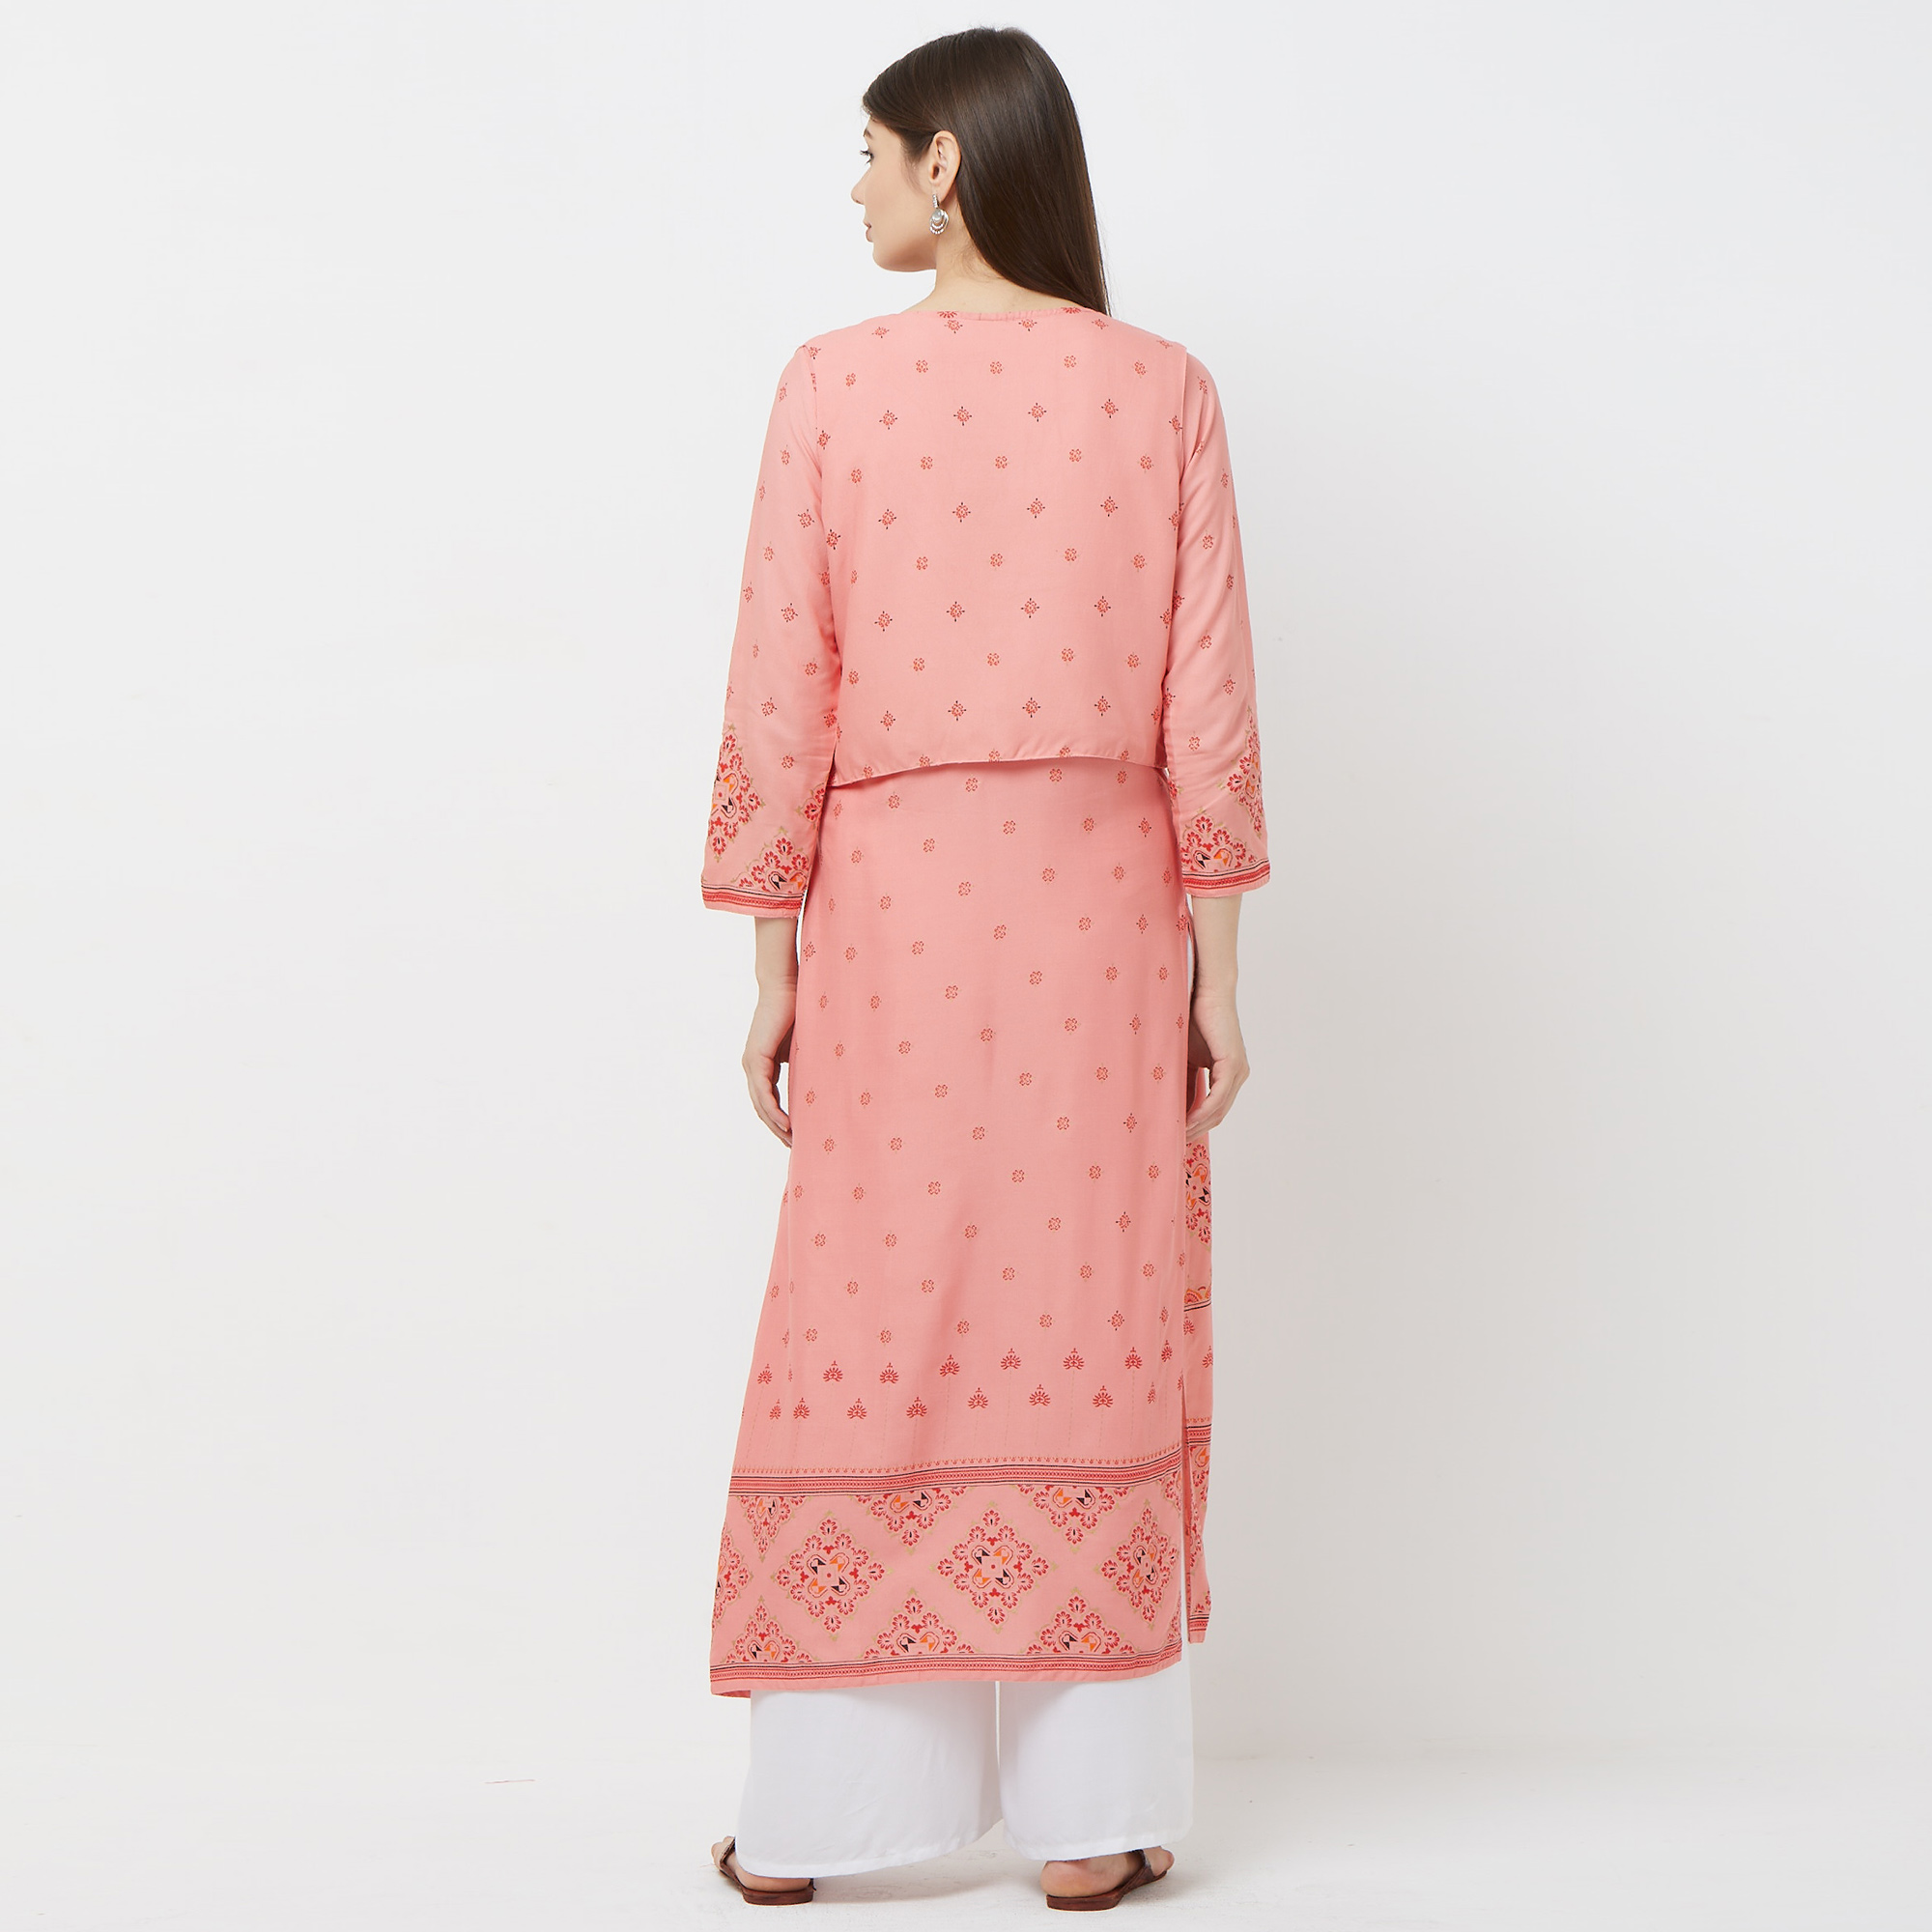 Opulent Peach Colored Partywear Printed Cotton Kurti With Koti